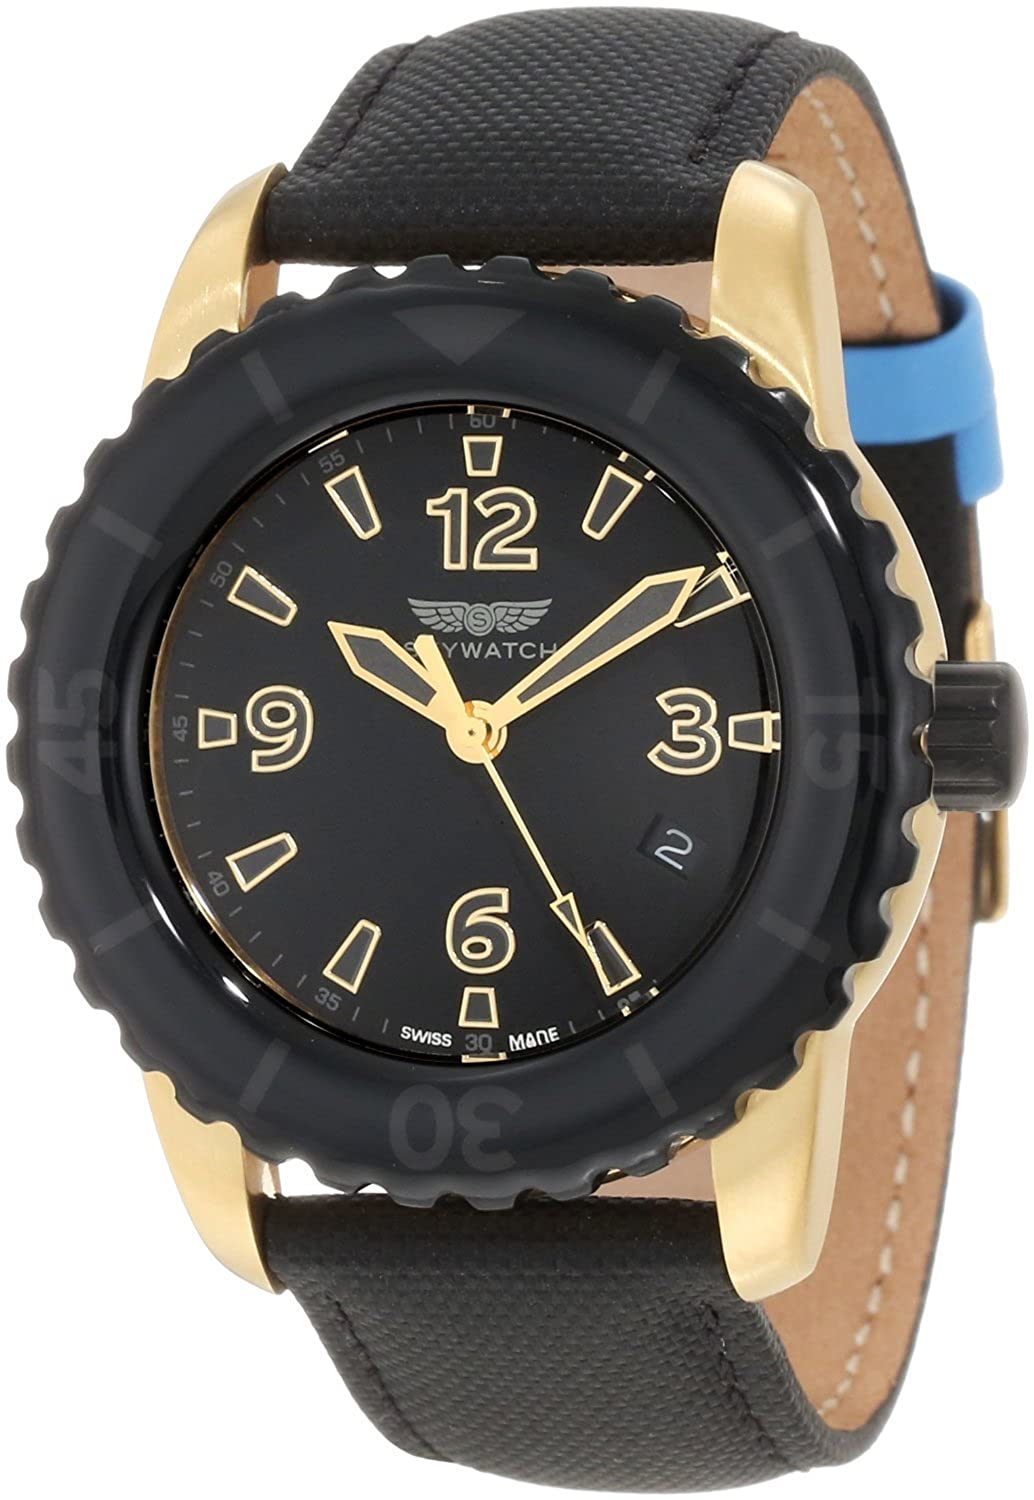 SkyWatch Analog Black Dial Men's Watch - CC1009